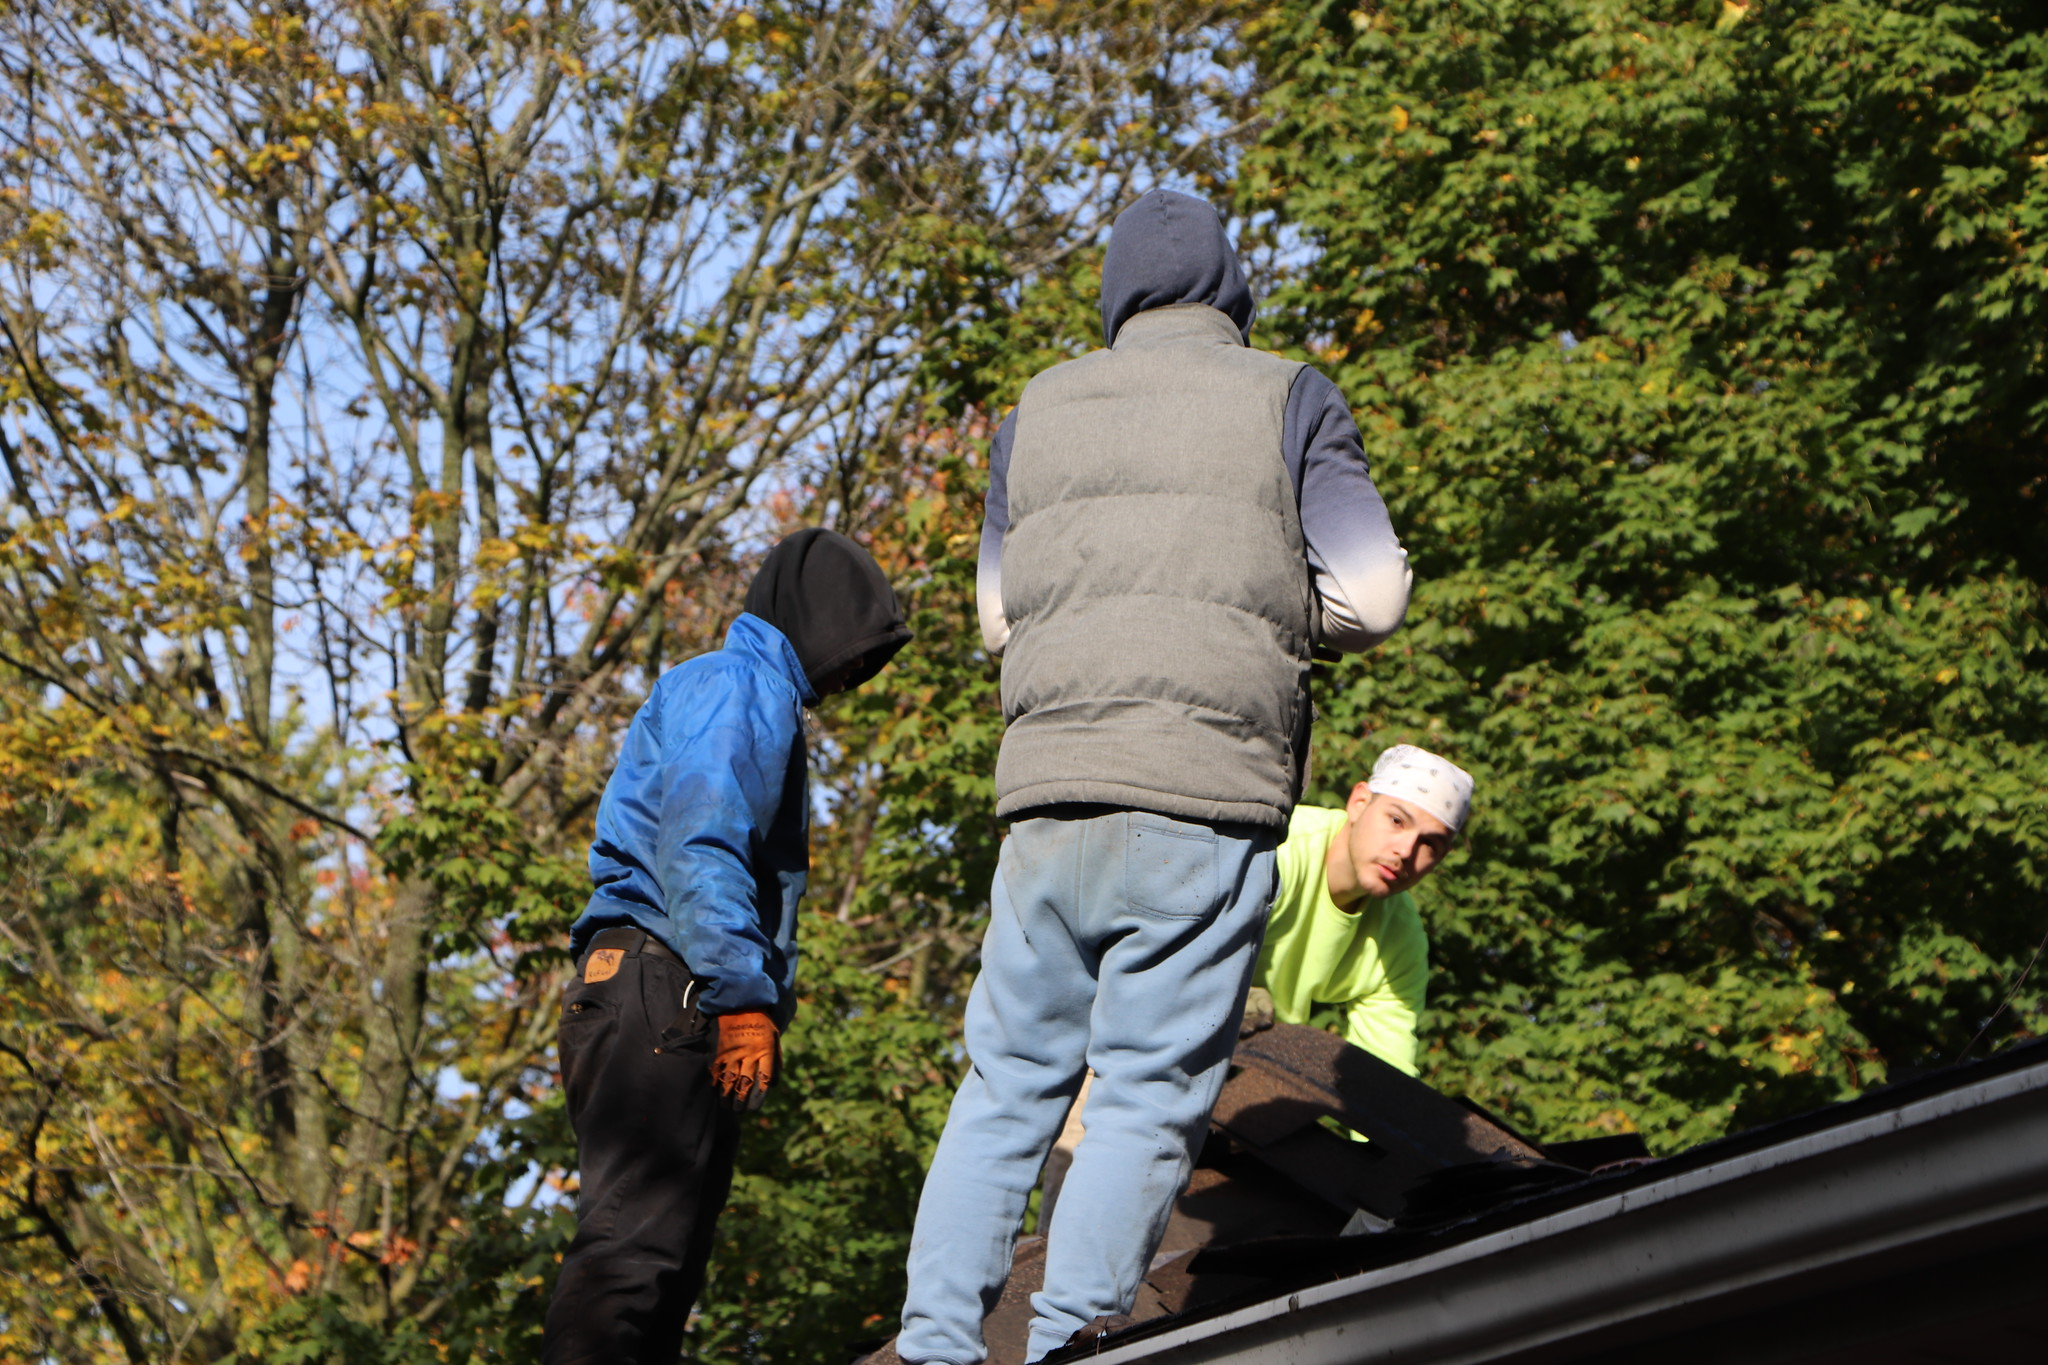 Roof Inspection AfterLeakage When It Rains